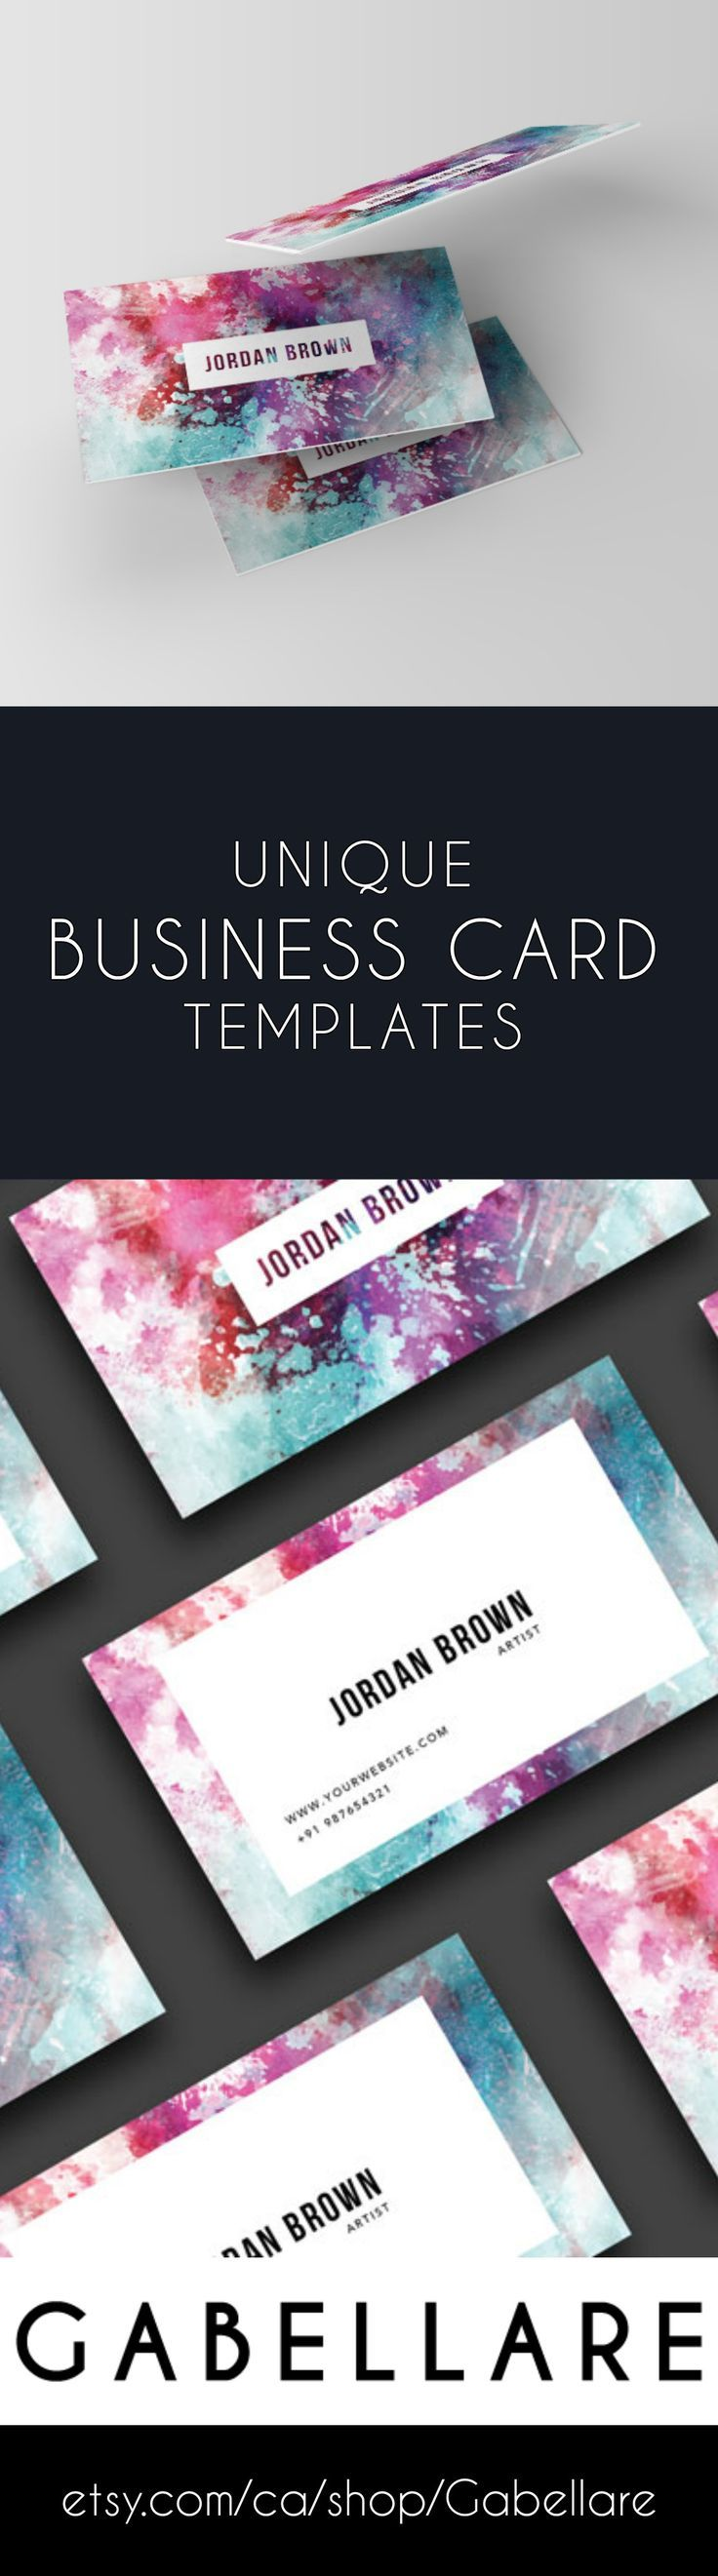 Best 25 business cards canada ideas on pinterest promotional best 25 business cards canada ideas on pinterest promotional design conference branding and conference themes magicingreecefo Images